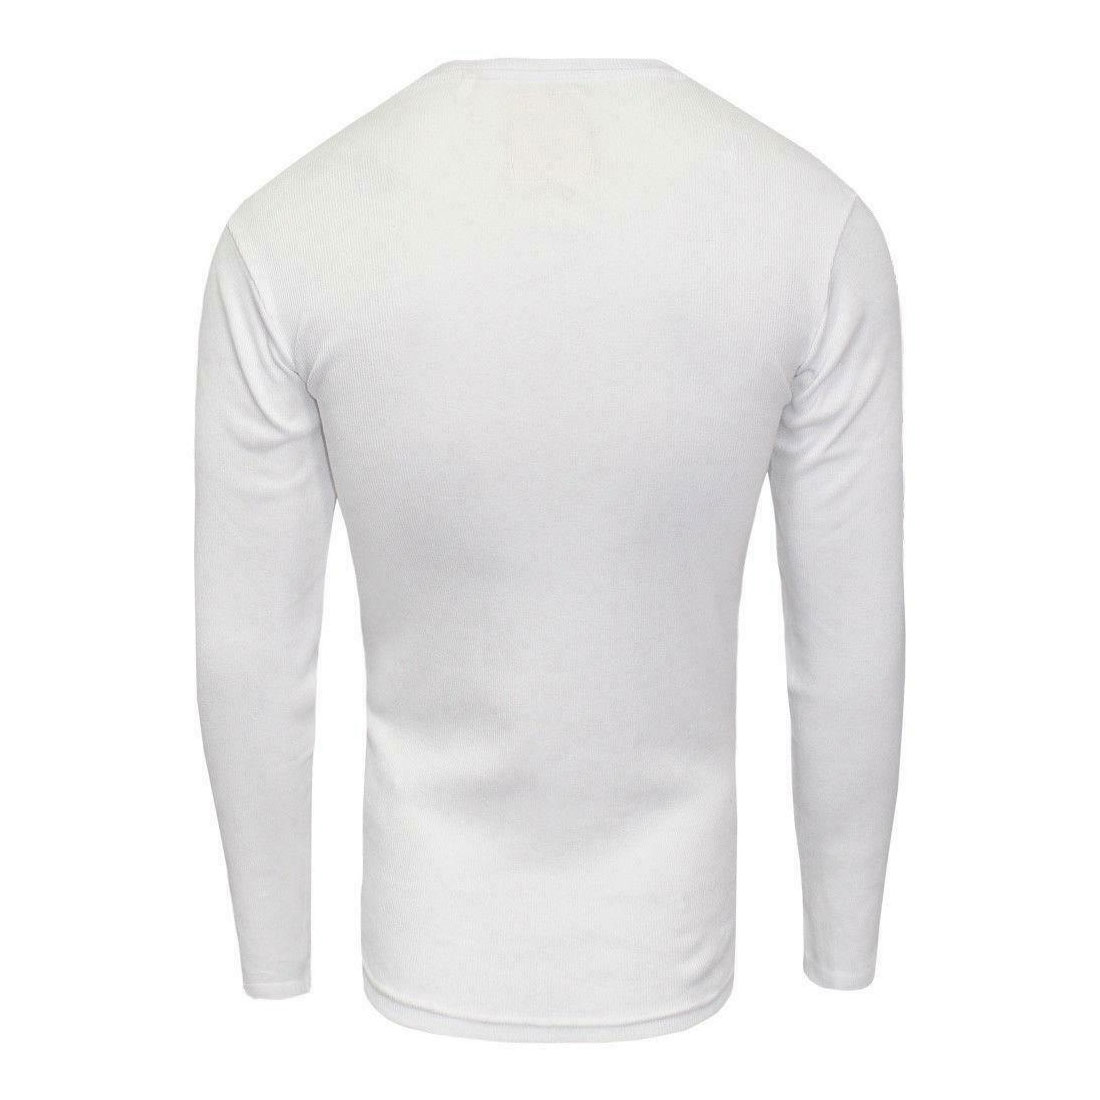 Brave-Soul-Casual-Grandad-Long-Sleeve-Top-Plain-T-Shirt thumbnail 3